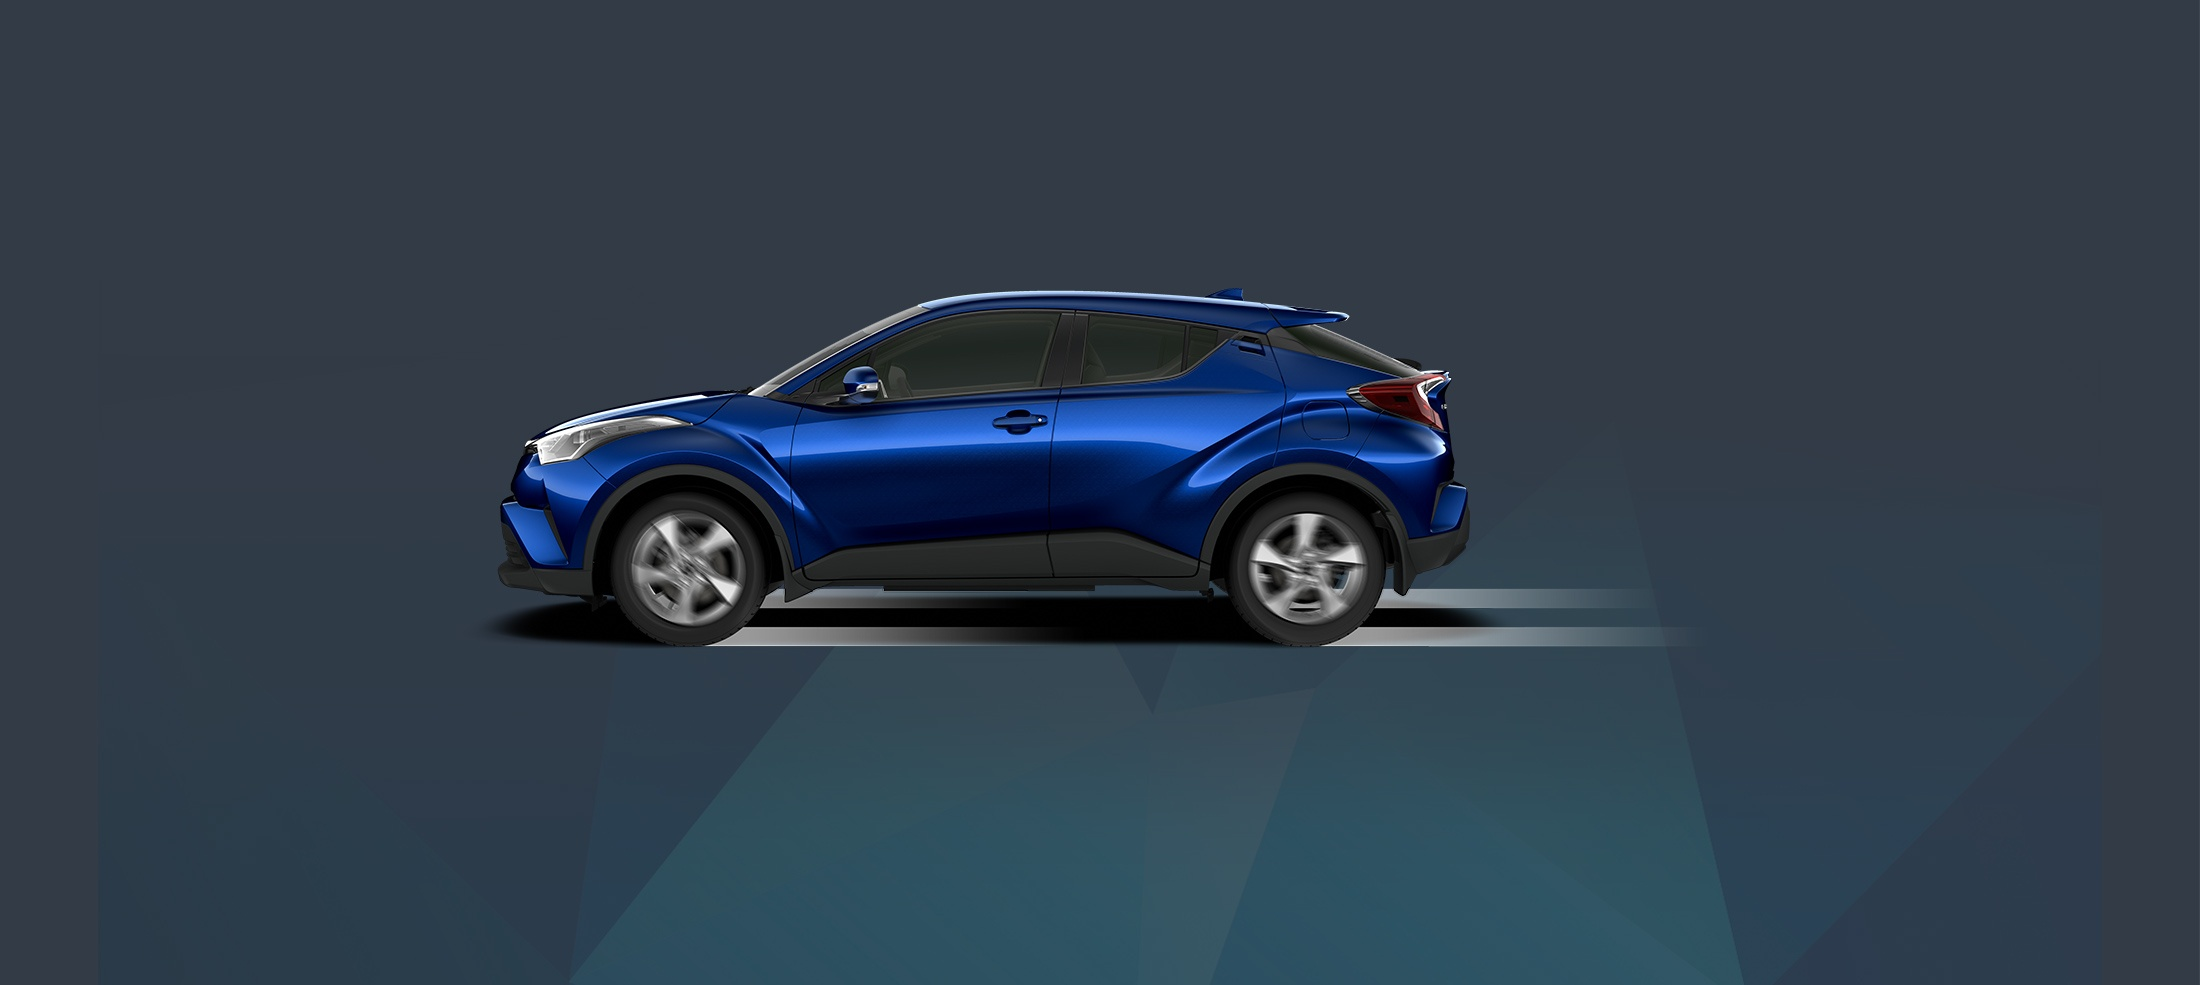 toyota-2019-c-hr-features-performance-brake-assist-l